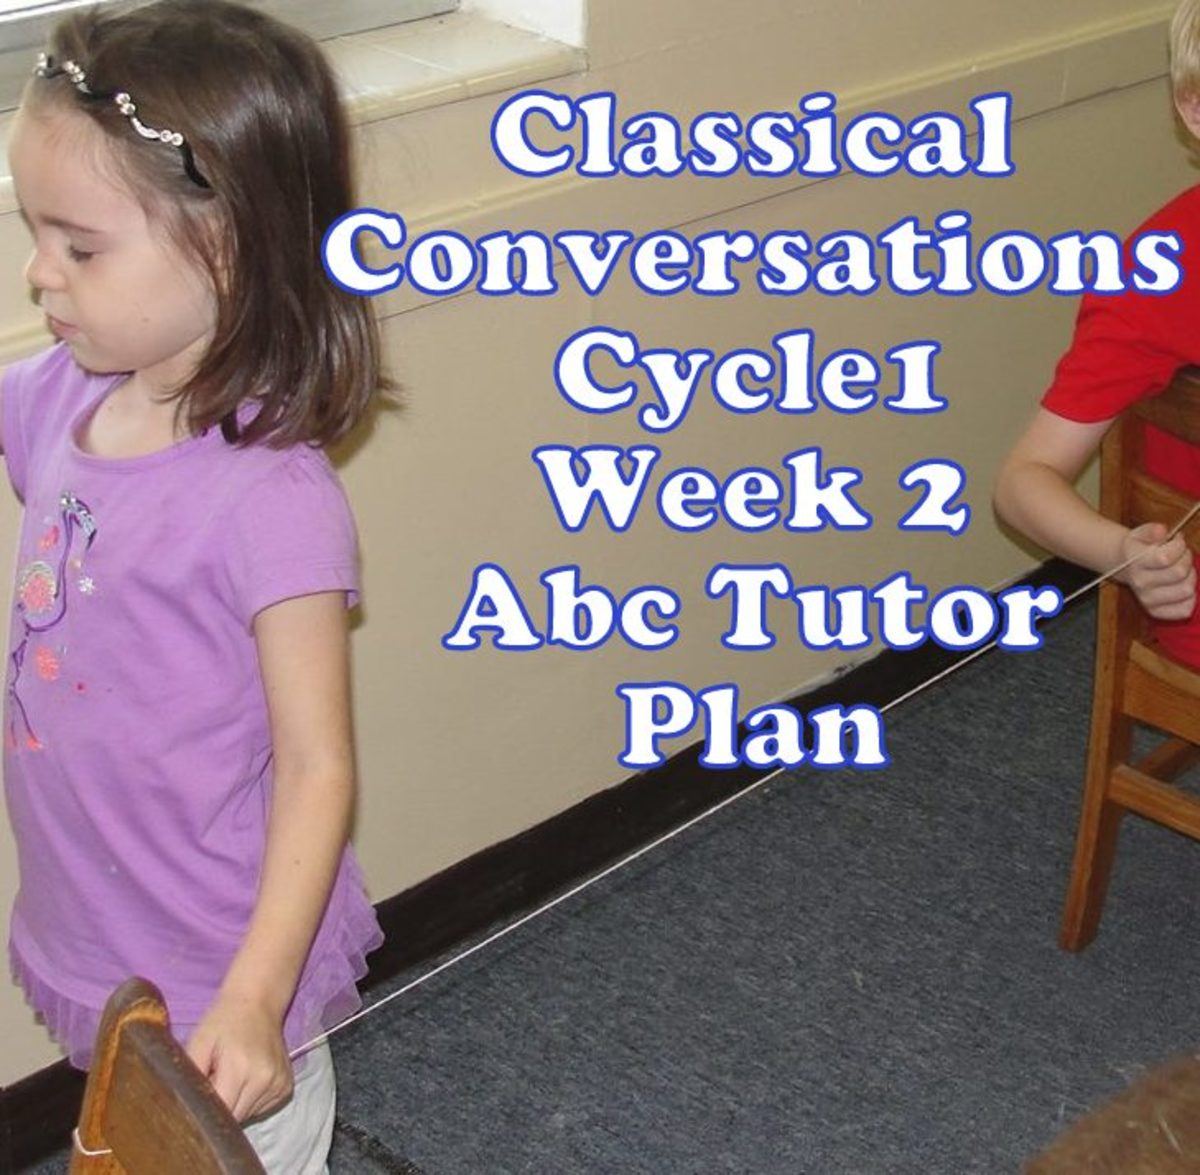 Classical Conversations Cycle 1 Week 2 Abc Tutor Plan - My child is learning how a spider senses vibrations on her web.